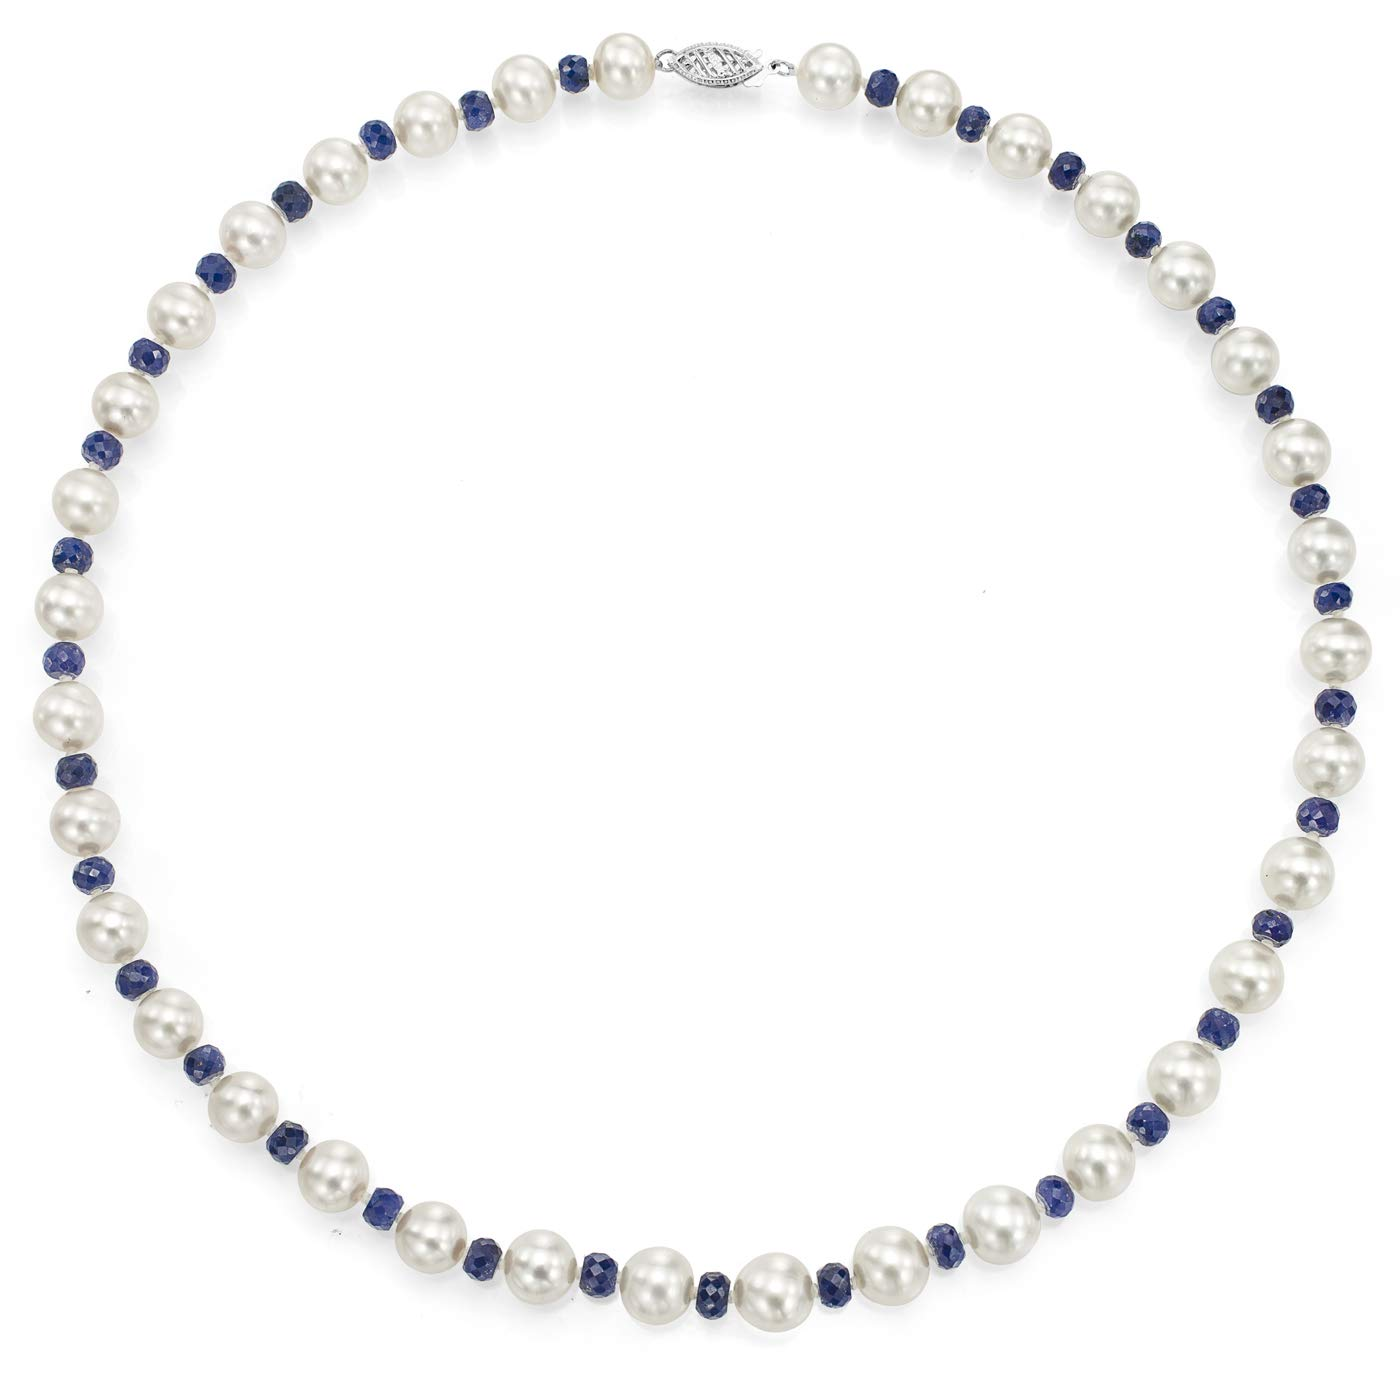 14K White Gold Freshwater Cultured White Pearl Sapphire Necklace Anniversary Gift 18 inch 8-8.5mm by La Regis Jewelry